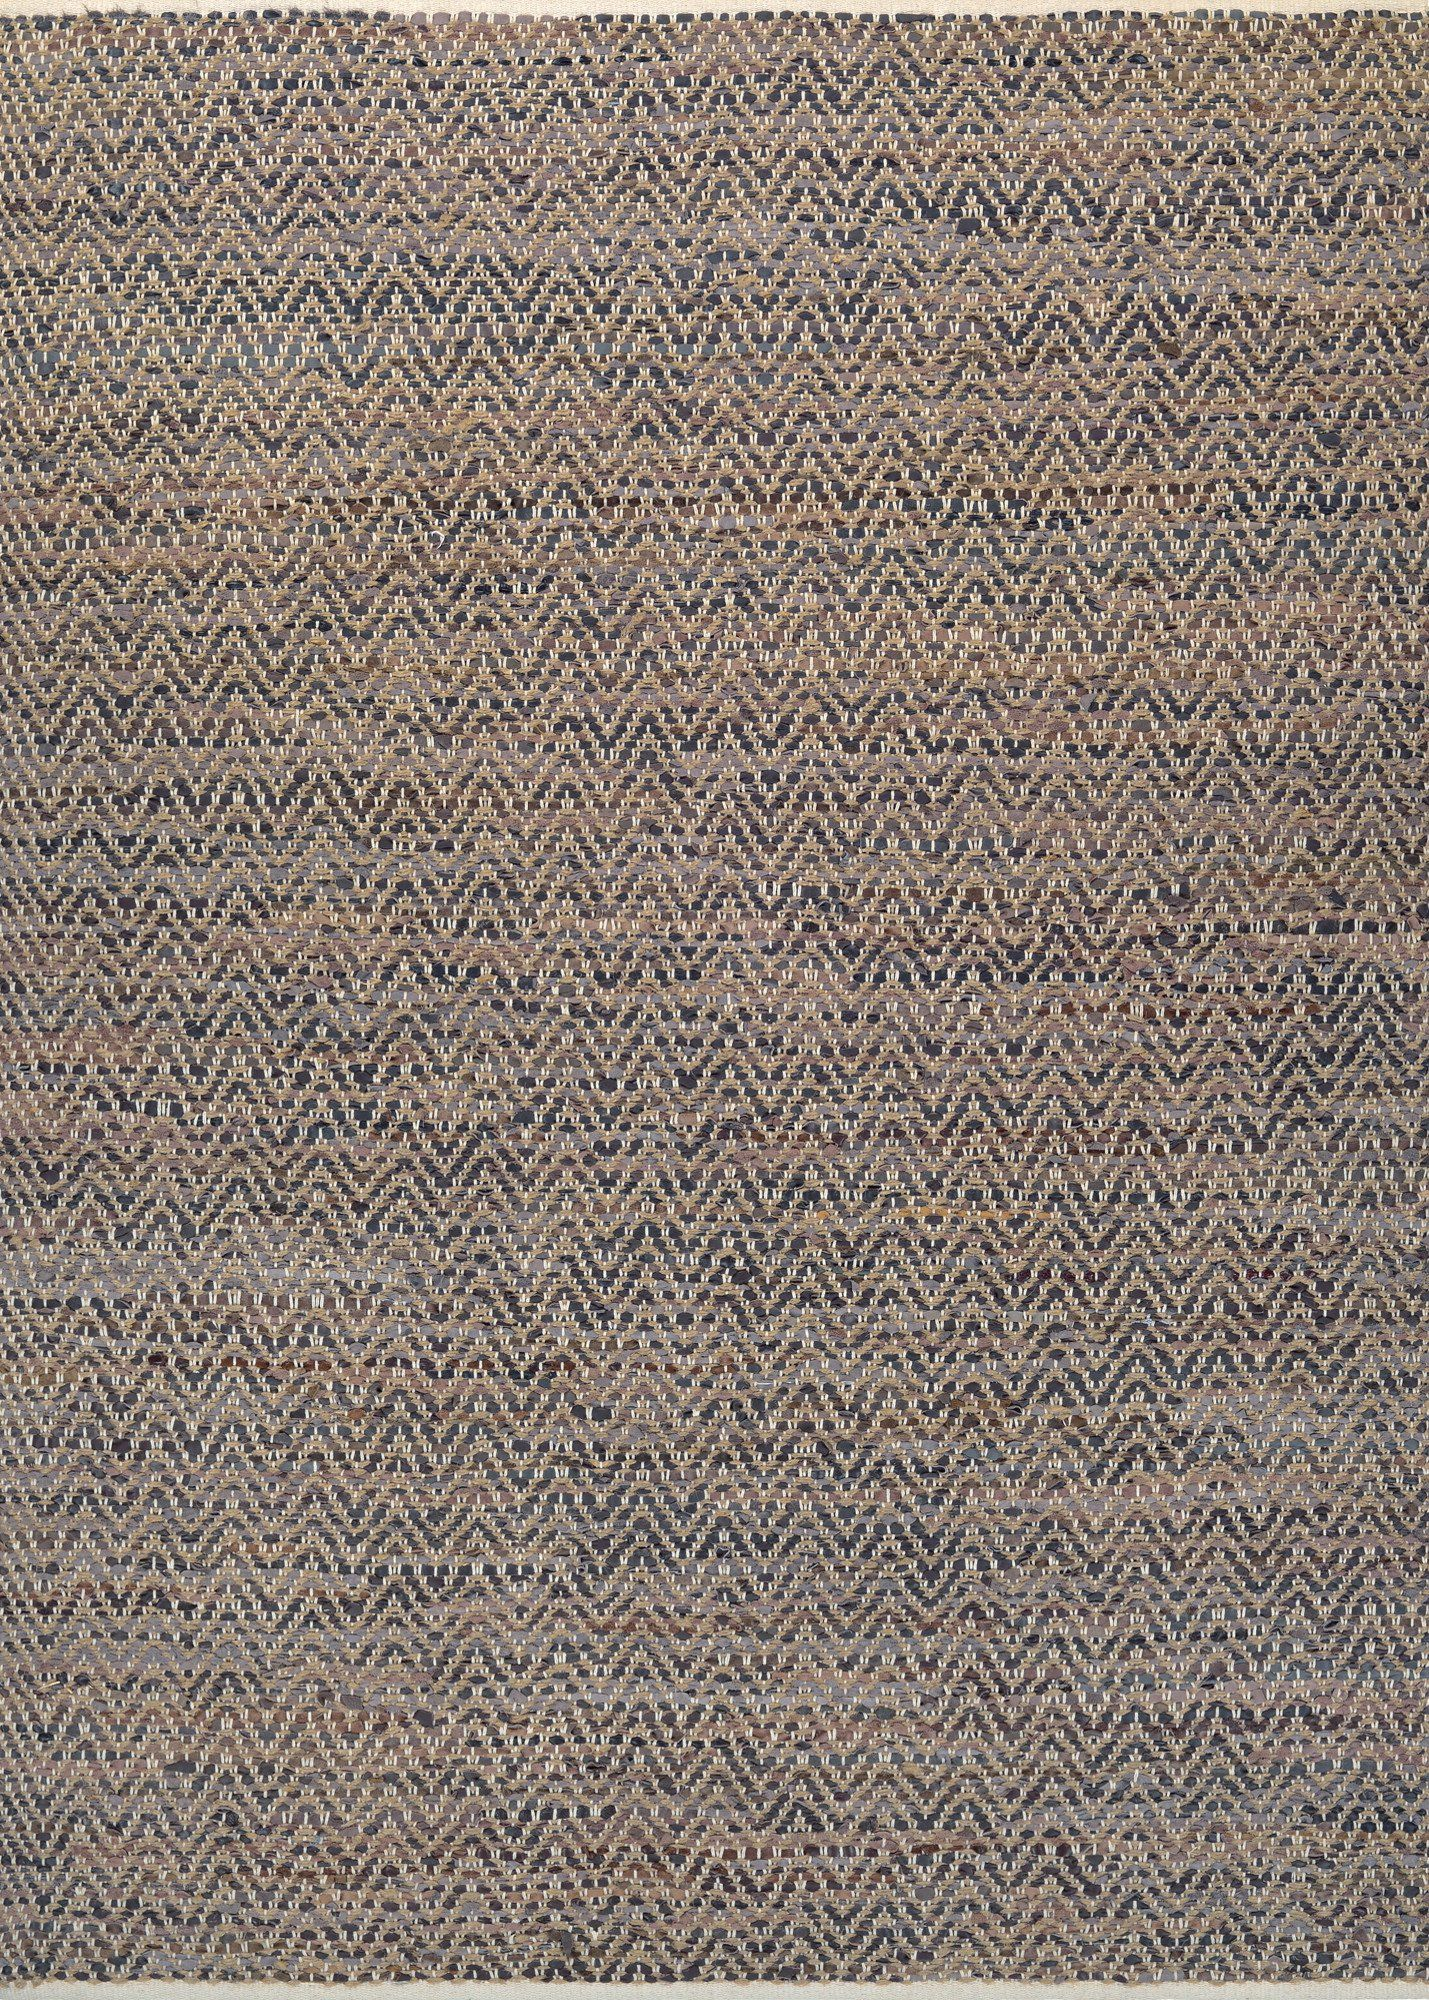 Natures Elements Terrain Eco Friendly Area Rugs